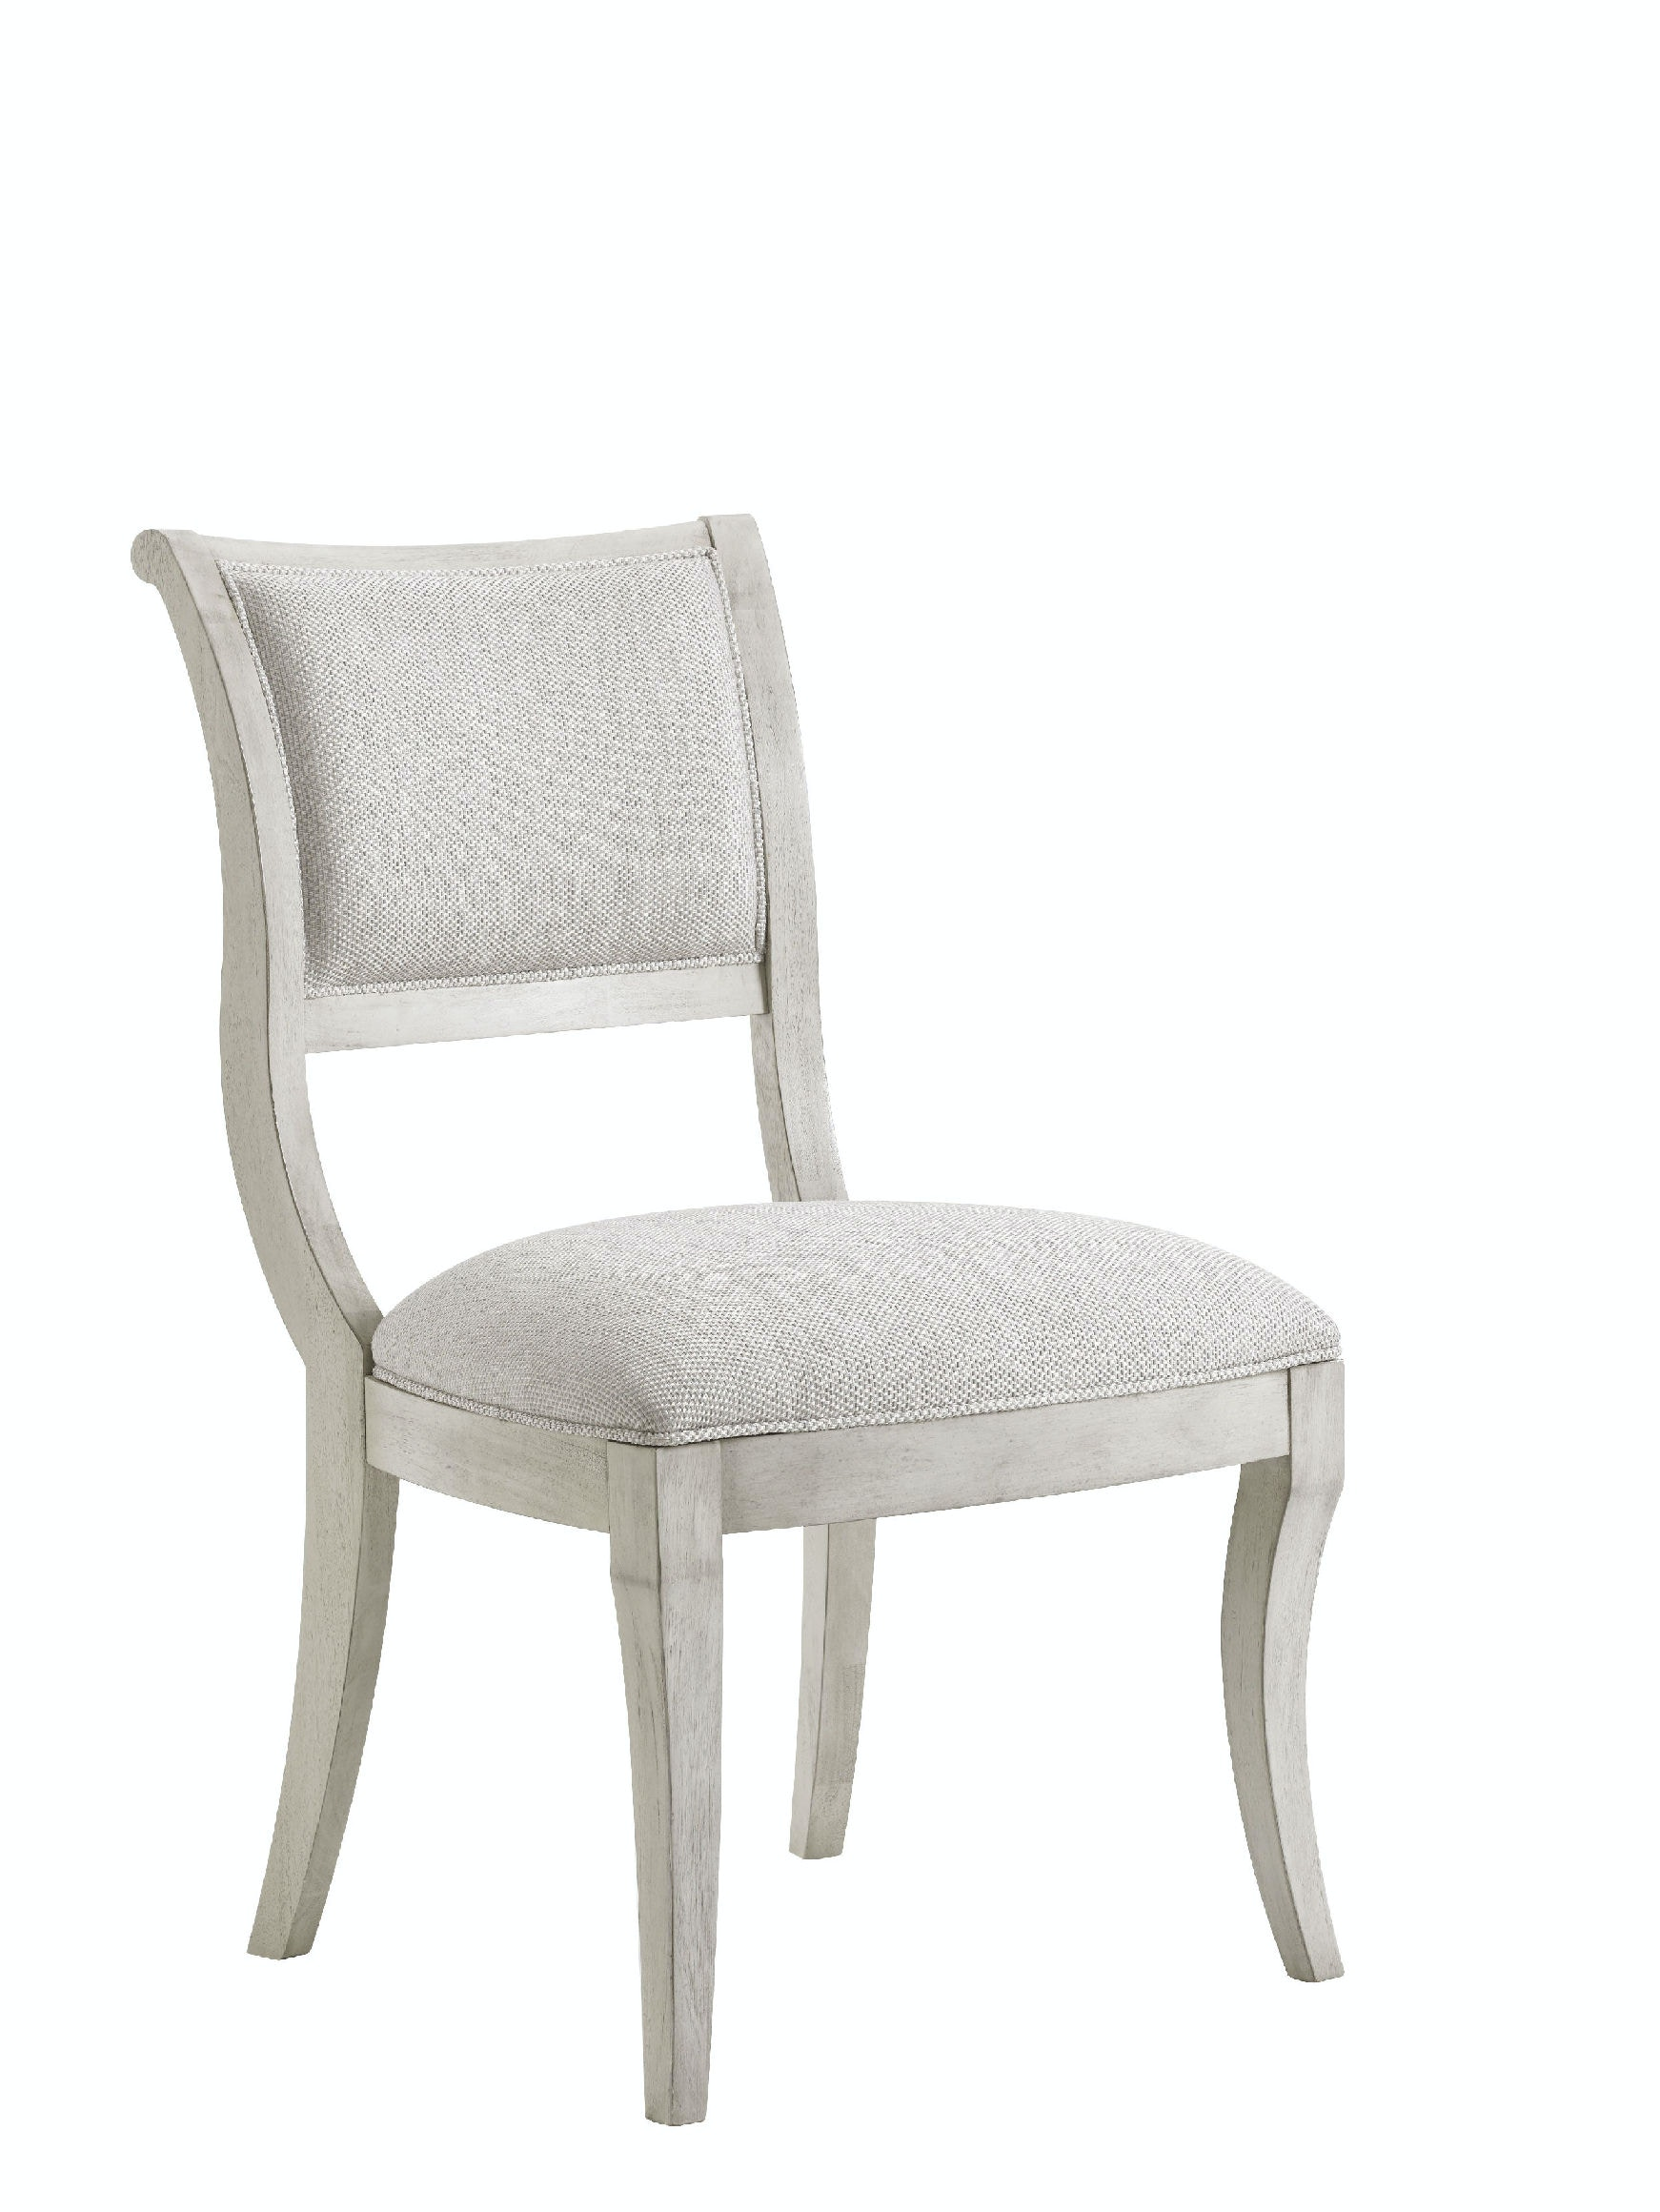 lexington dining chairs christmas chair covers canada room eastport side 714 880 01